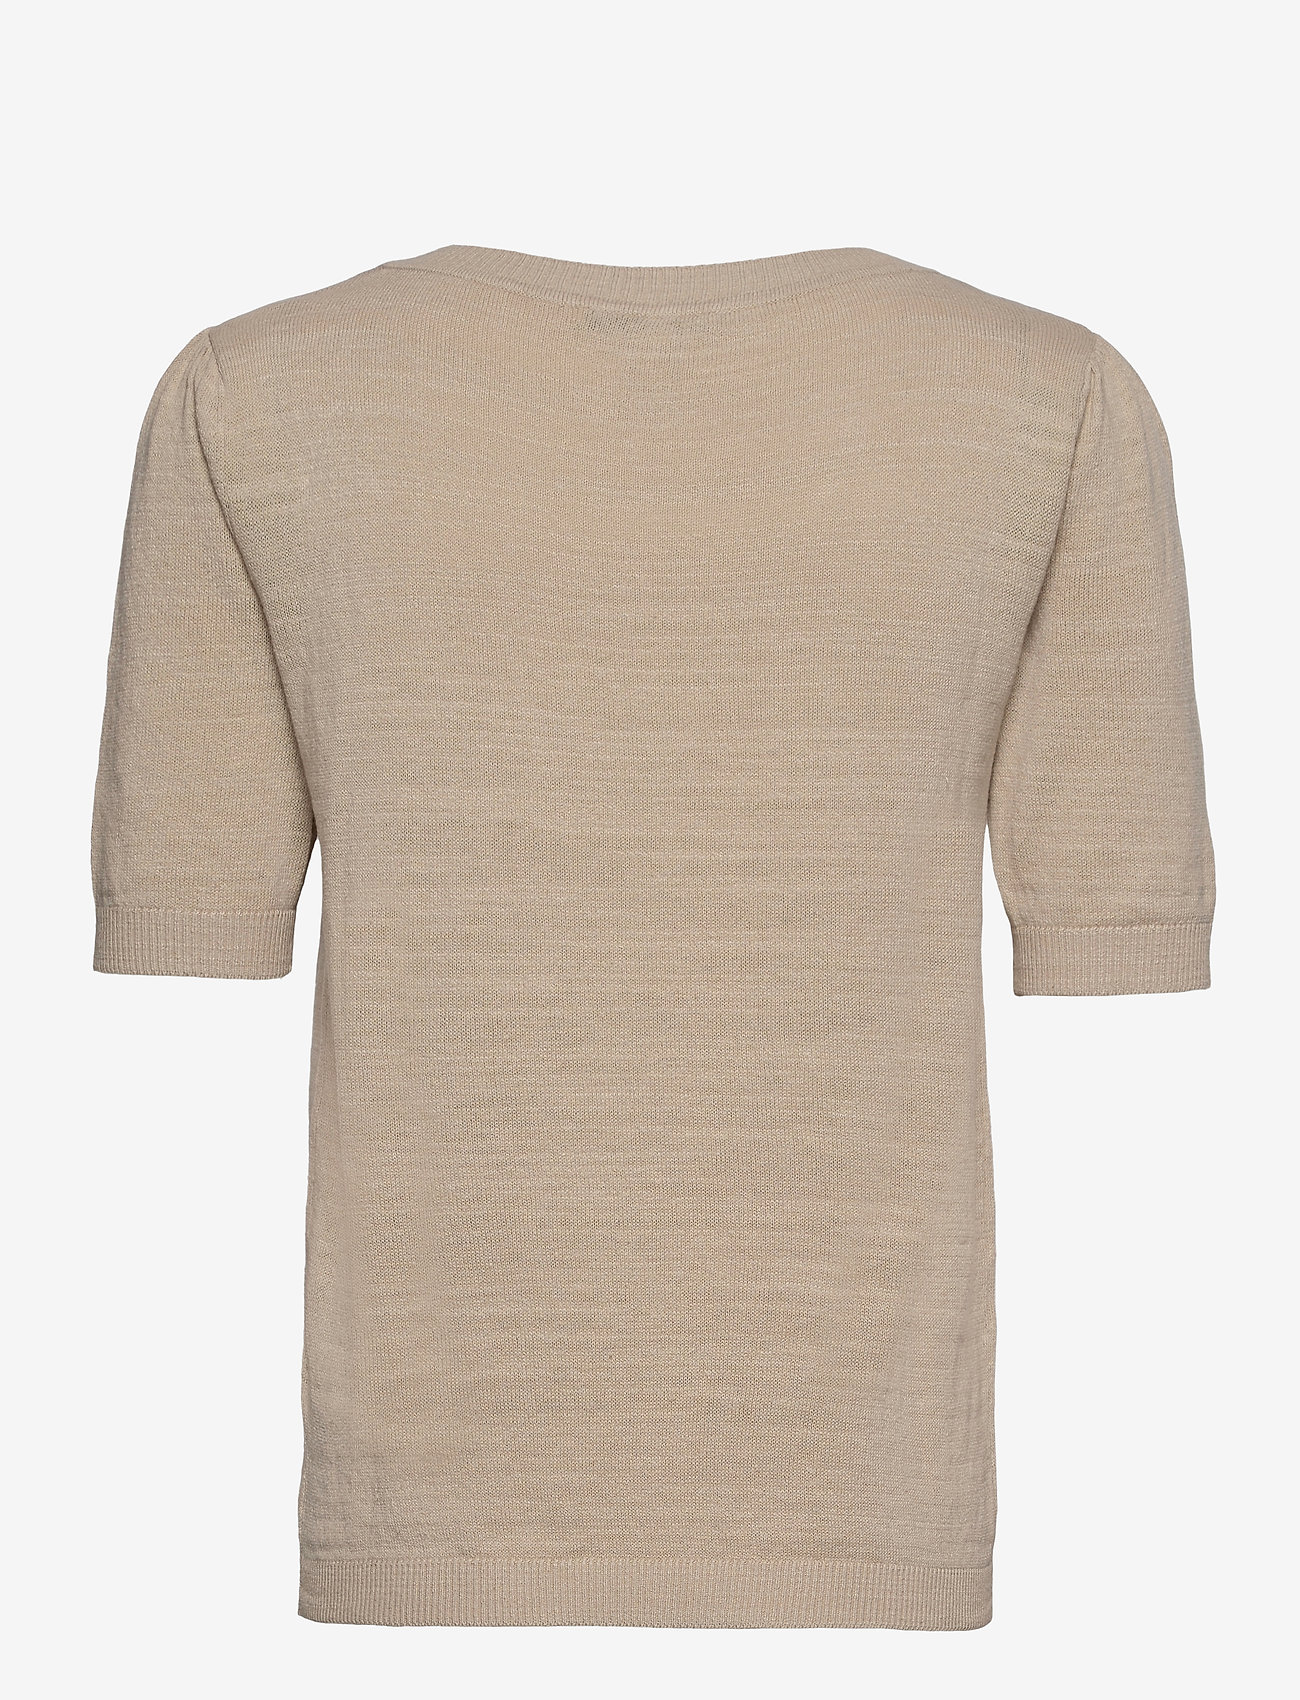 Esprit Casual - Sweaters - strikkede toppe - sand 5 - 1